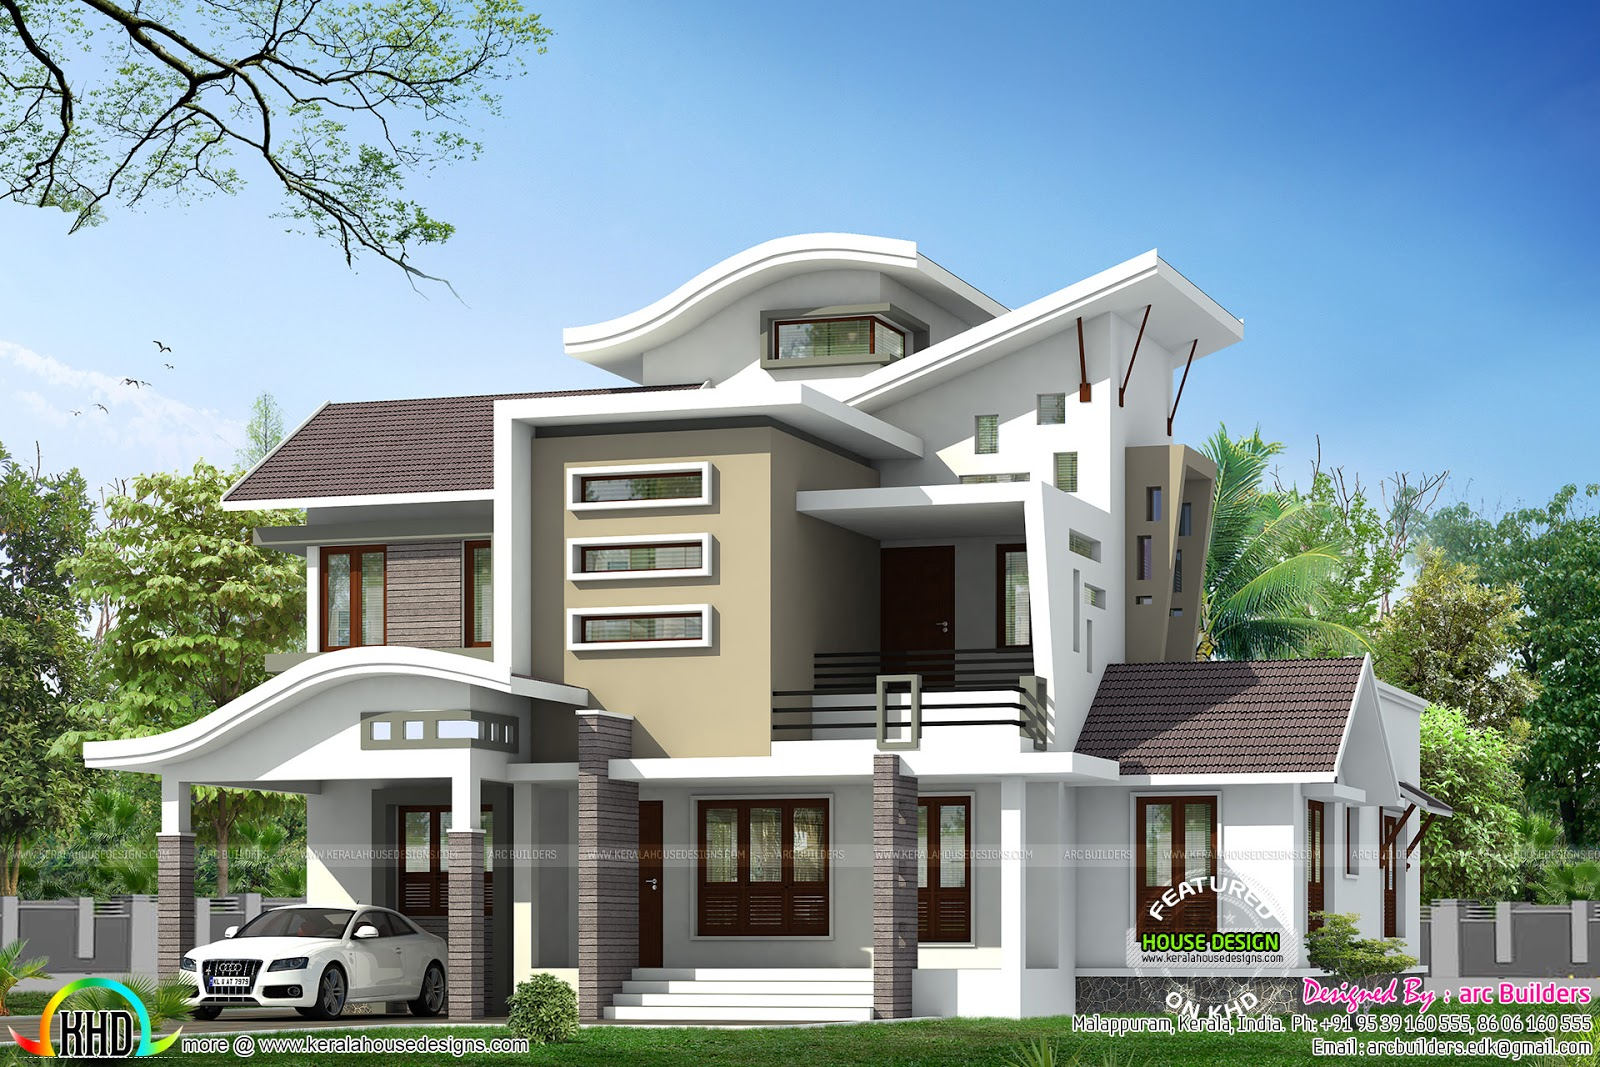 Unique ultra modern contemporary architecture kerala for Home architecture design kerala